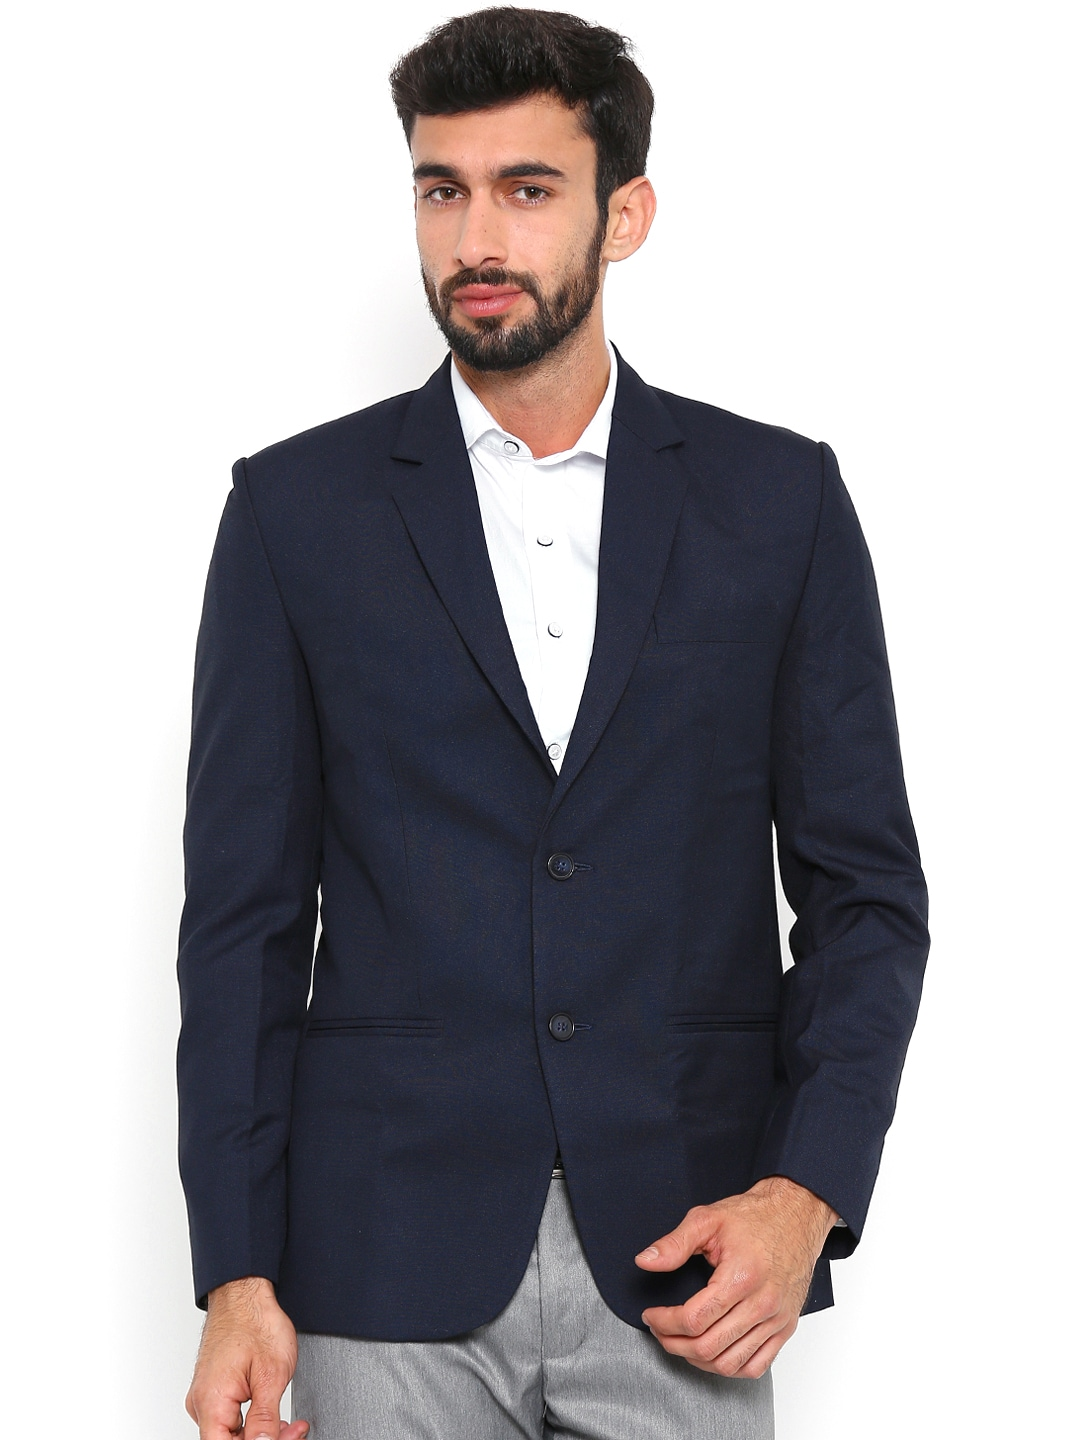 Mens Blazer With Jeans U2013 All The Best Blazer In 2018